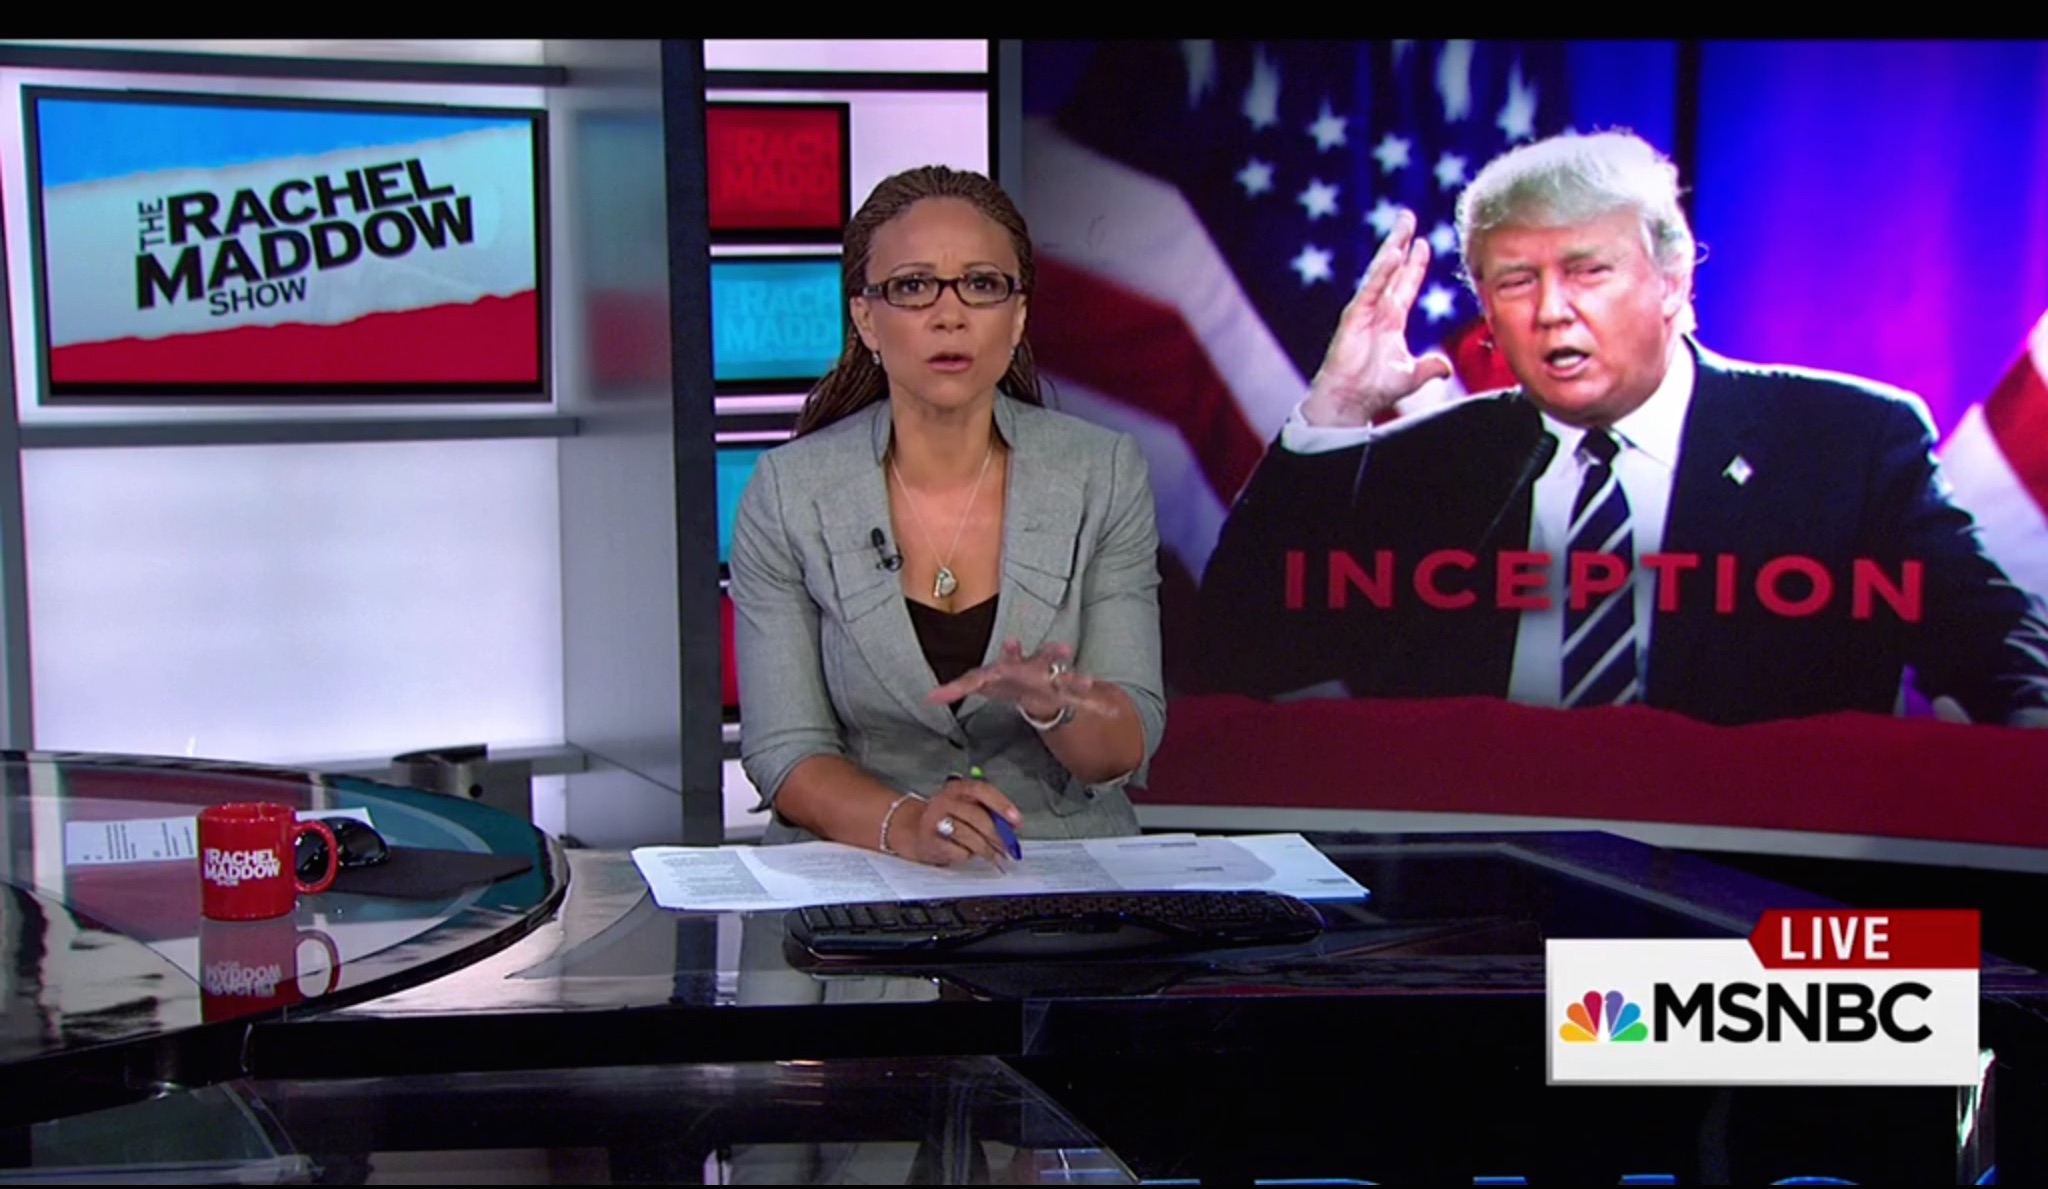 Melissa Harris-Perry fills in for Rachel Maddow on Monday's The Rachel Maddow Show on MSNBC.